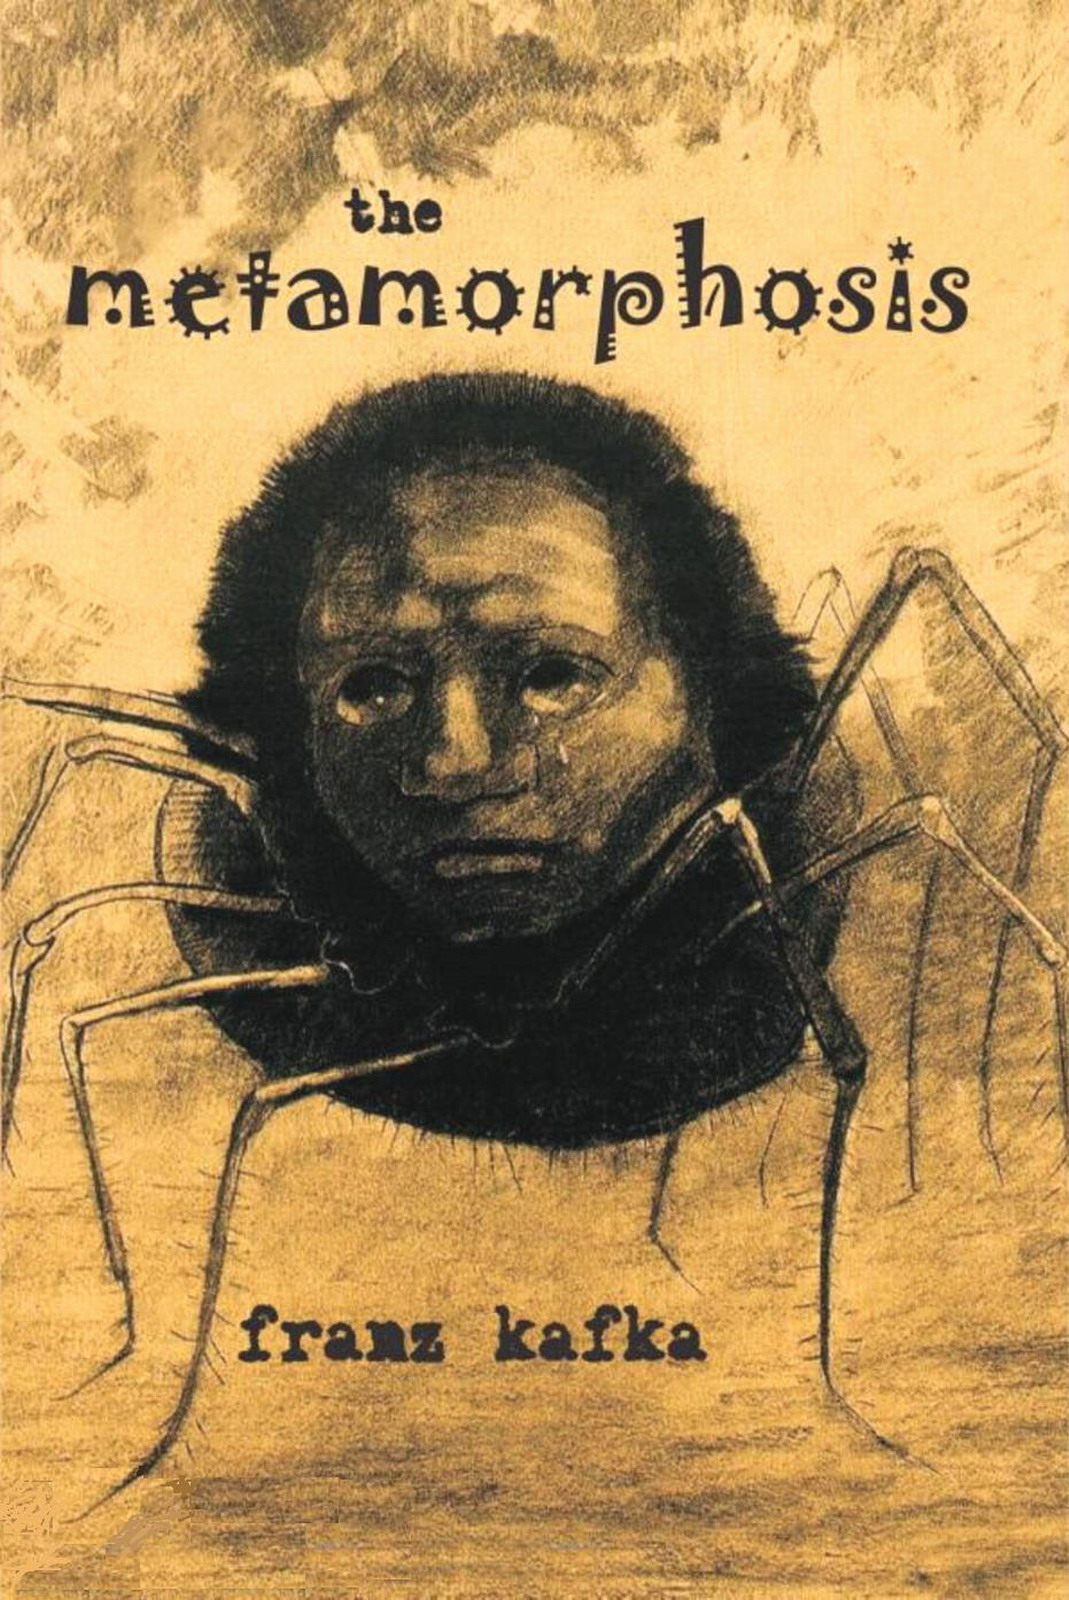 an analysis of grete in the metamorphosis by franz kafka Transcript of biographical approach to the metamorphosis the metamorphosis biographical analysis franz kafka grete bloch best friend of kafka's fiancee.